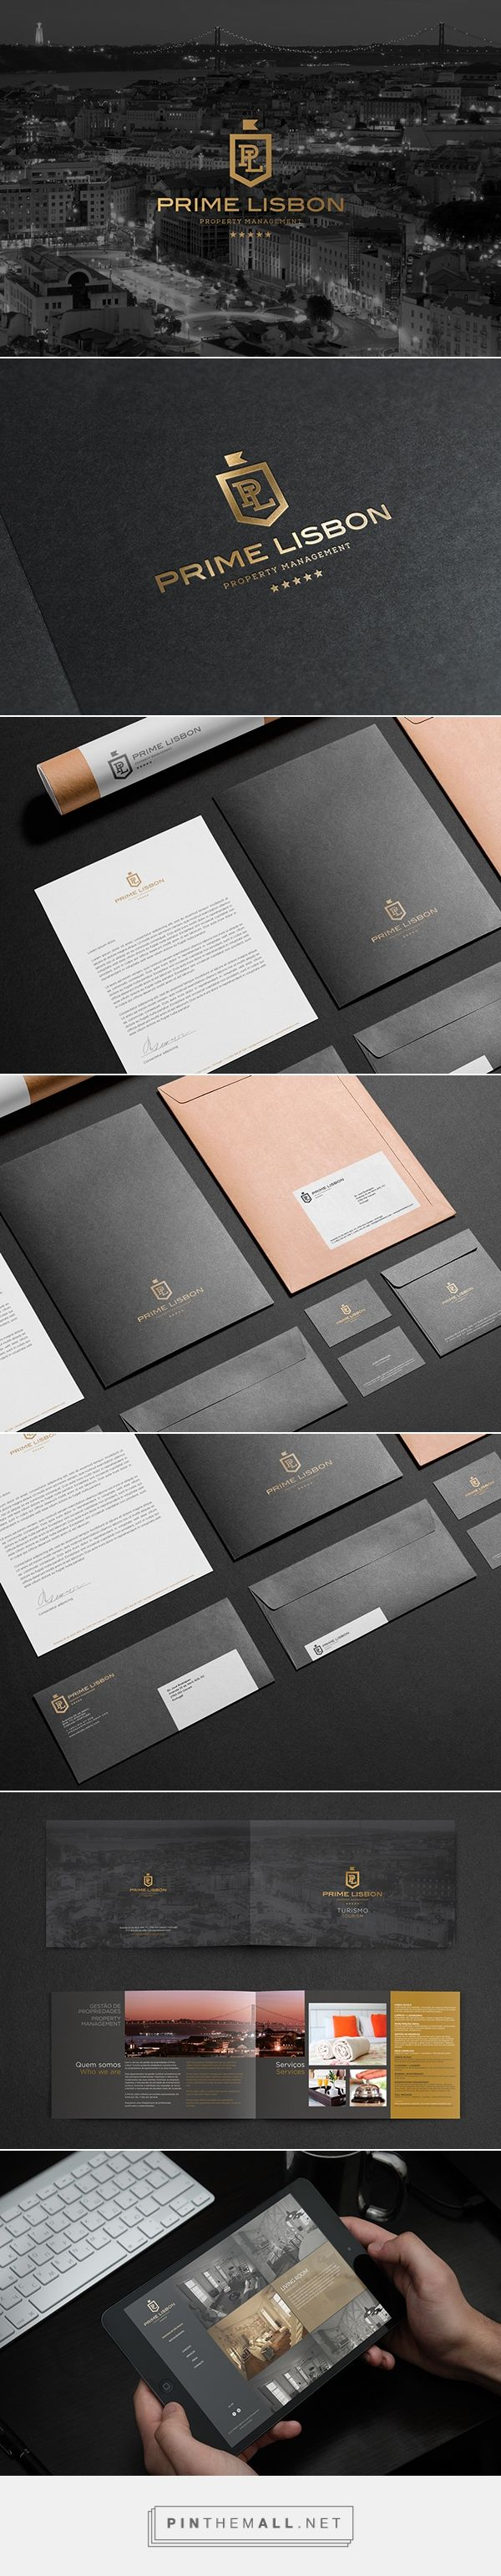 55 Best Logos Abogados Images On Pinterest Lawyers Brand Identity